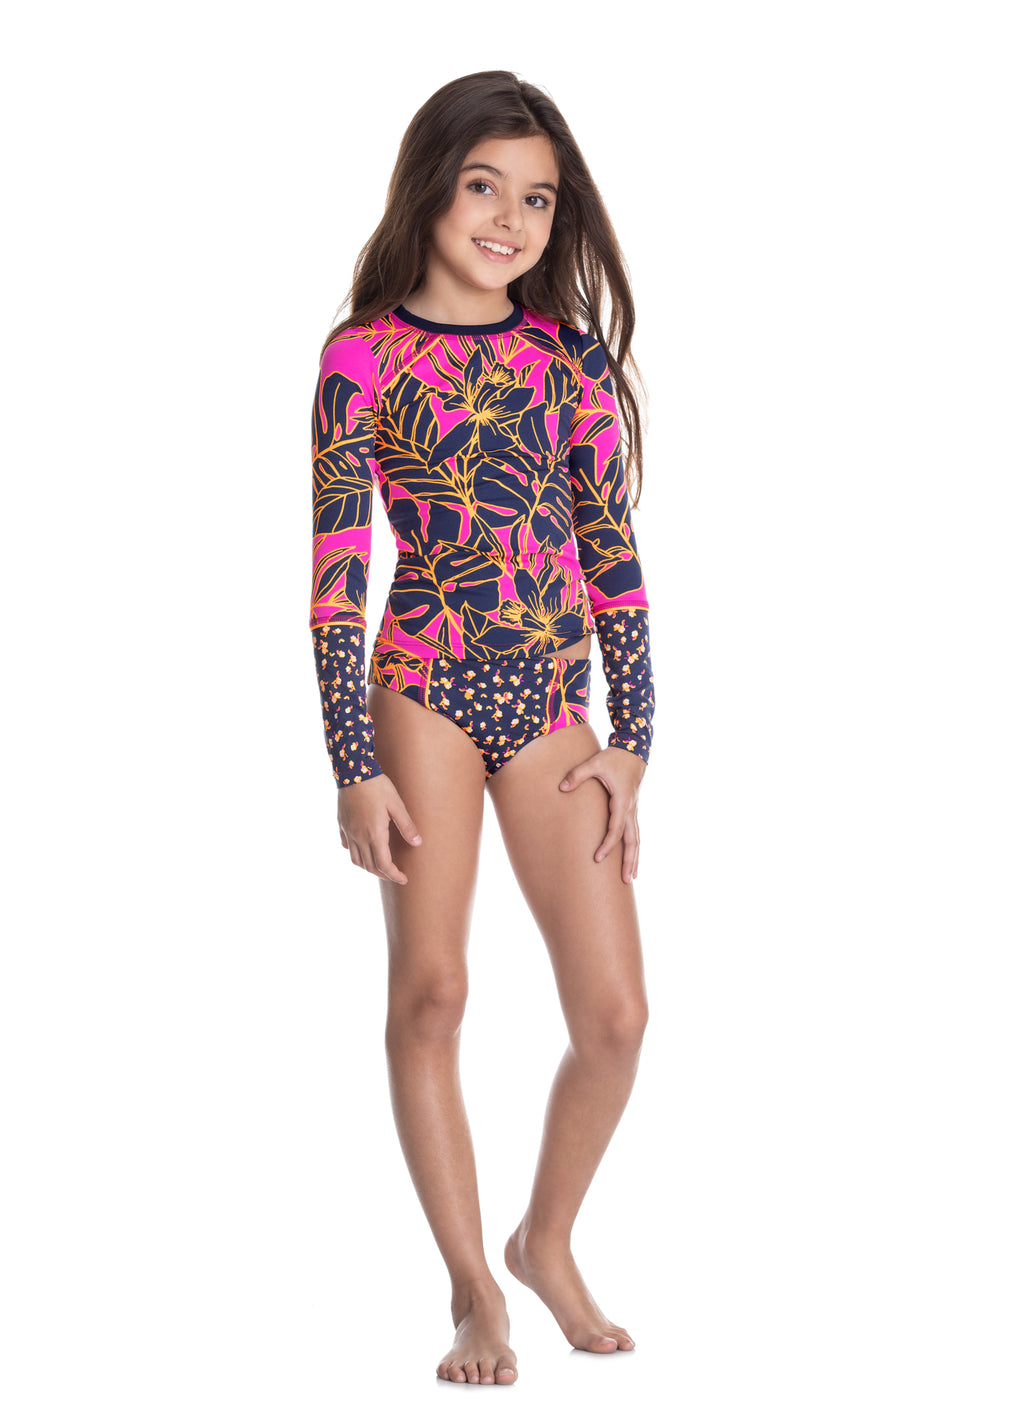 Girls Turtle Bay Rashguard Set